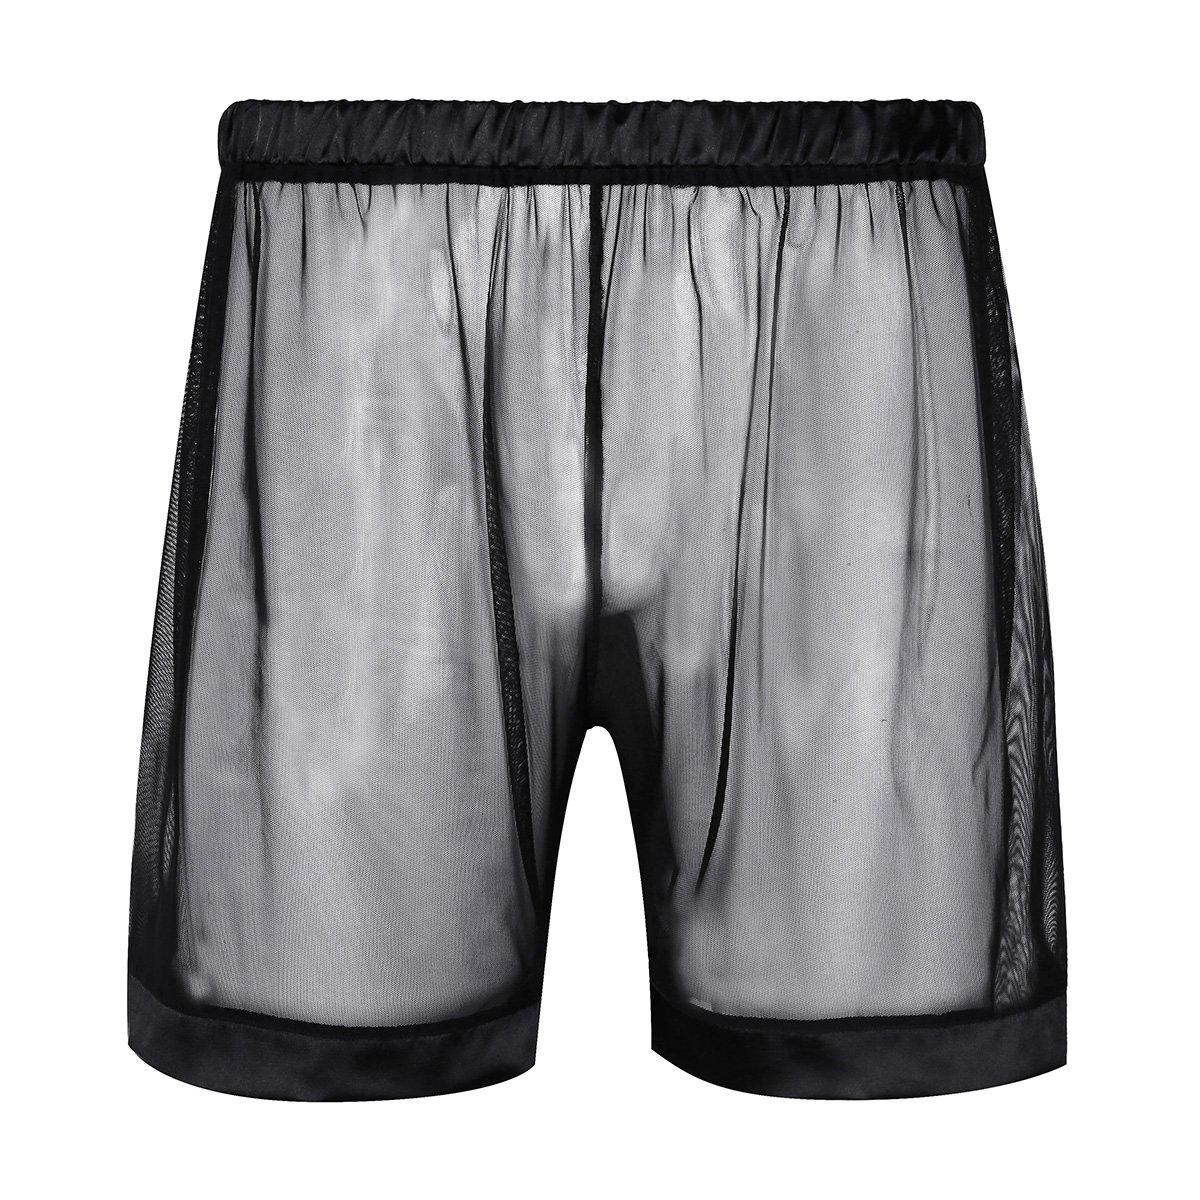 Alvivi Men's Mesh See-Through Loose Lounge Boxer Shorts Underwear